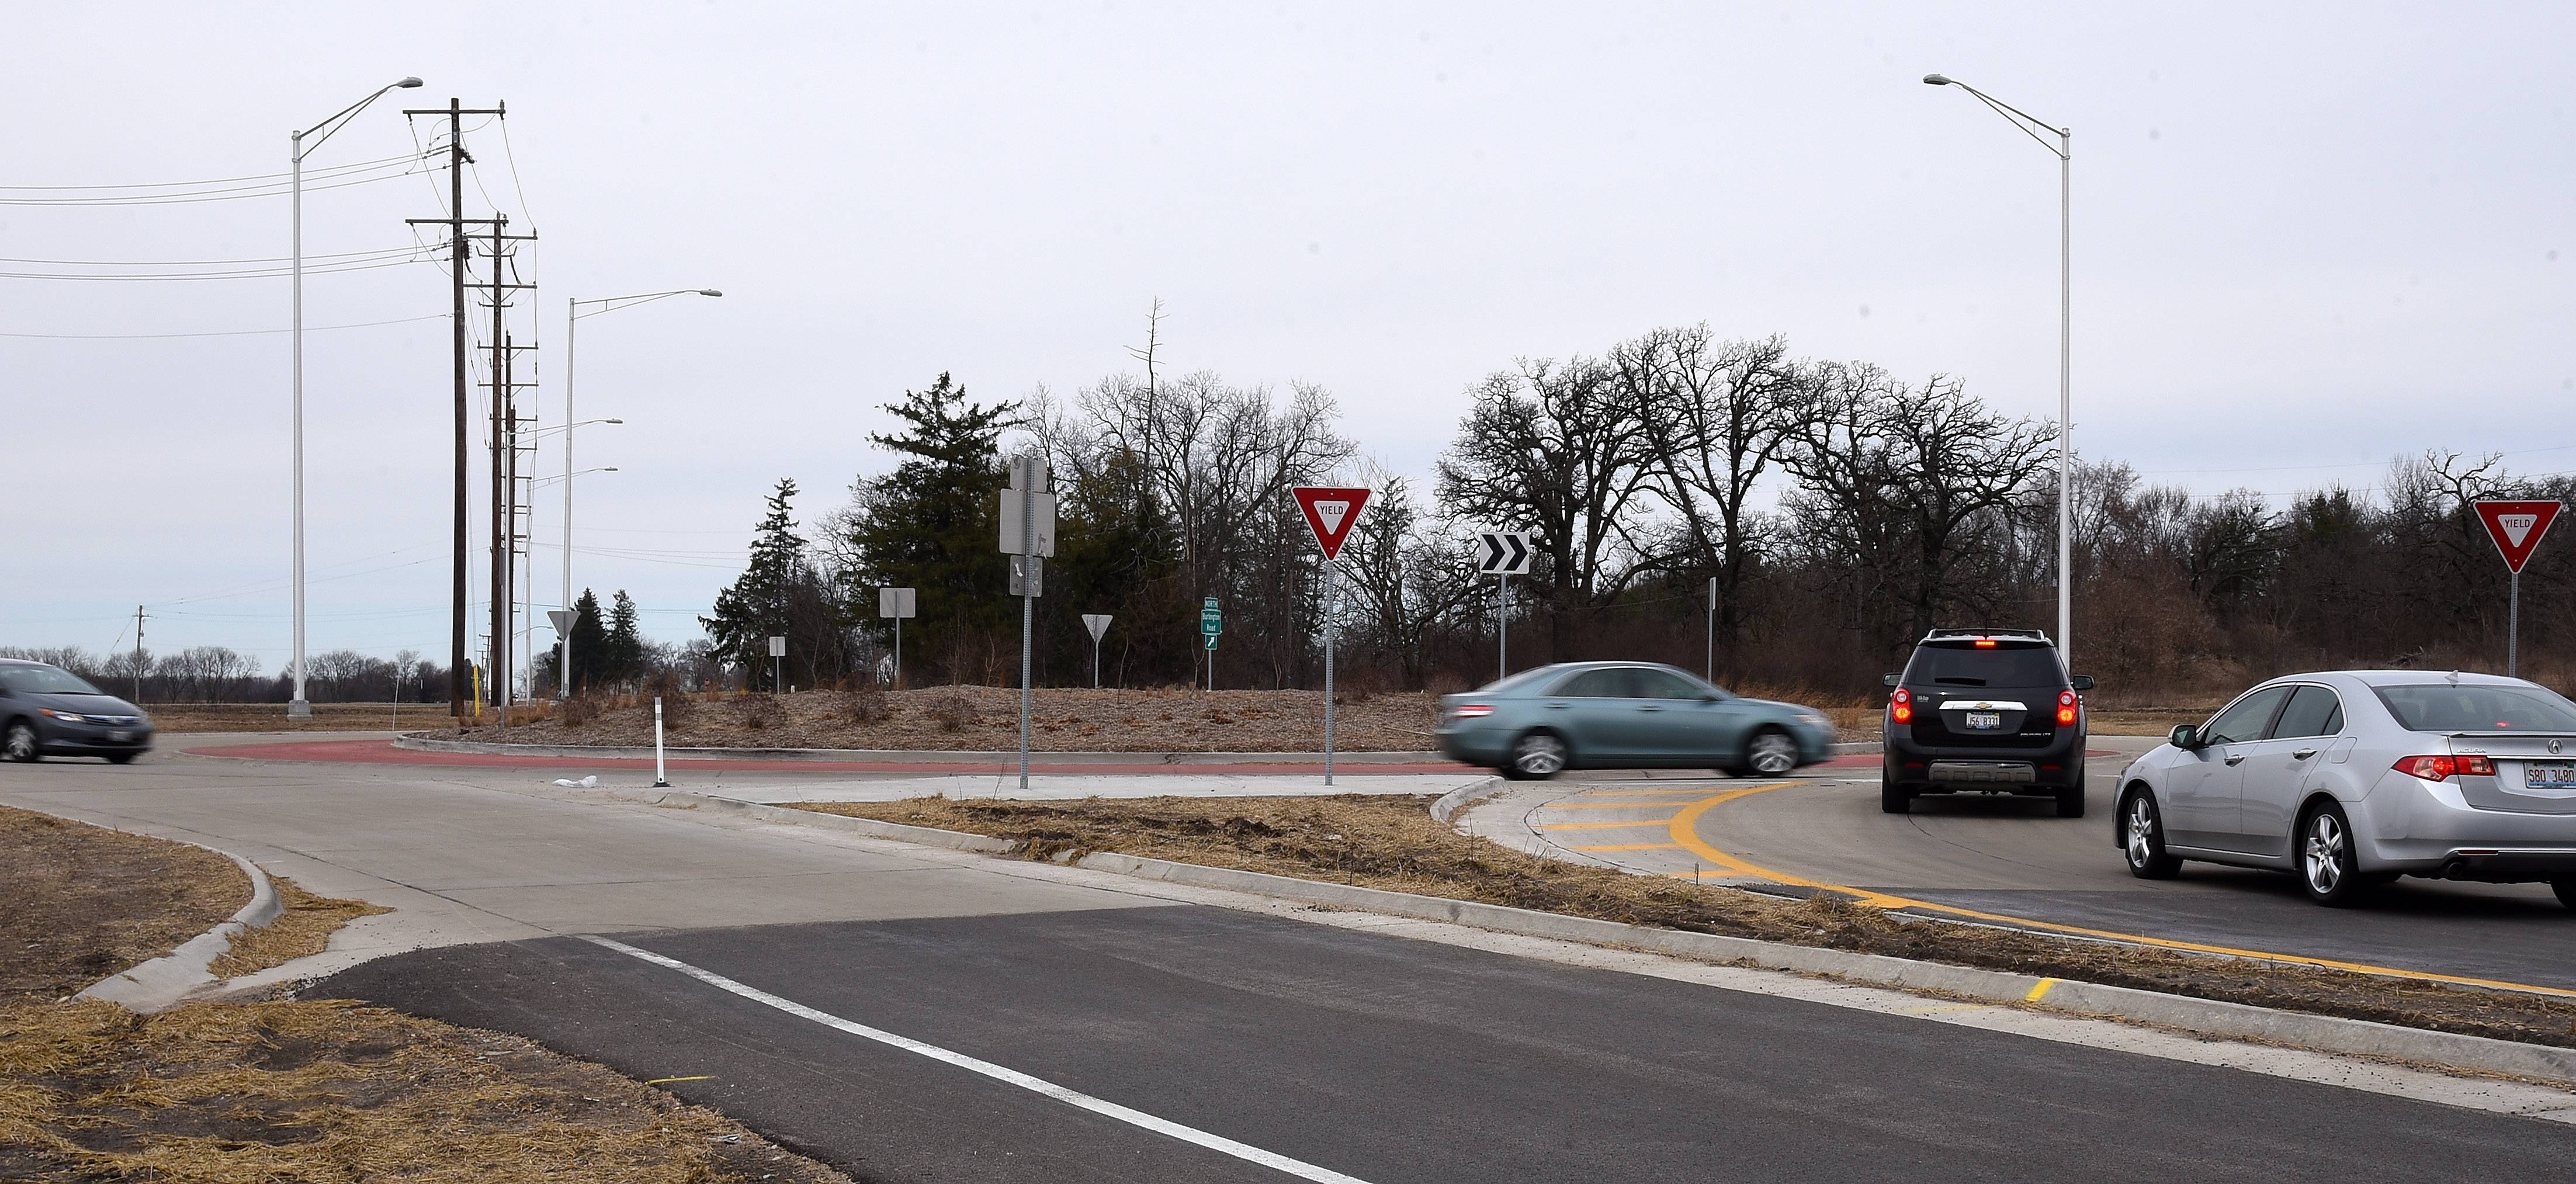 A county transportation project earmarked for the intersection of Bunker and Keslinger roads calls for a roundabout similar to this one at Route 47 and Burlington Road.